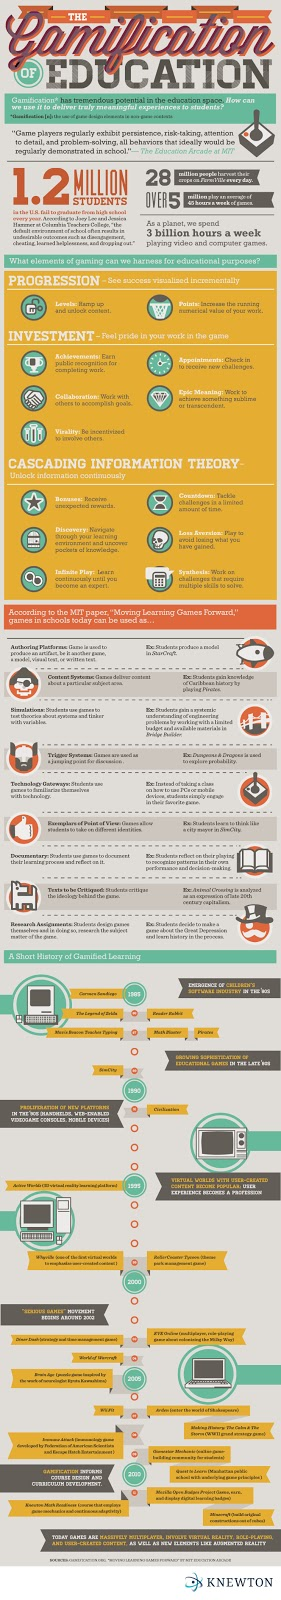 Gamification in Education Infographic http://s.knewton.com/wp-content/uploads/gamification-education.png